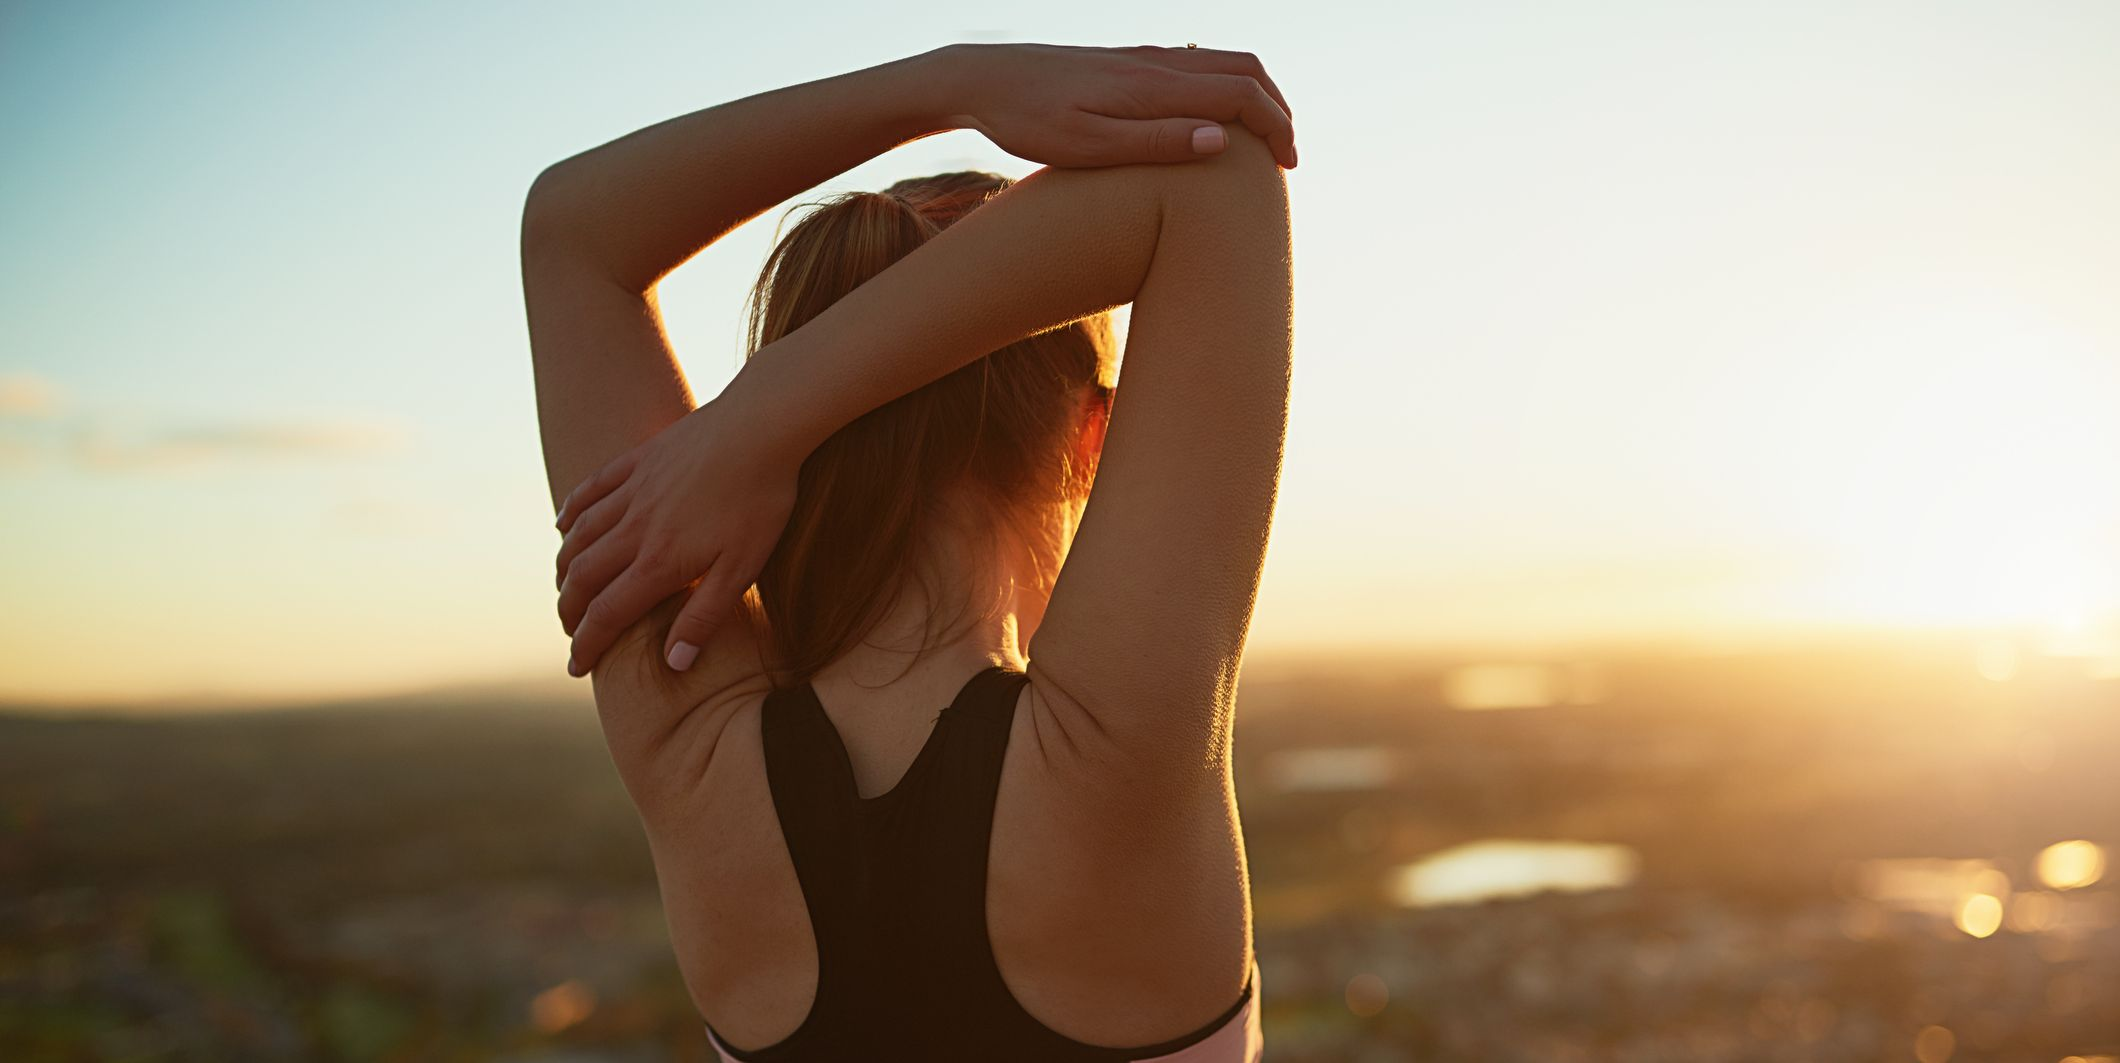 To Have a Healthier Day, Start Every Morning Doing This